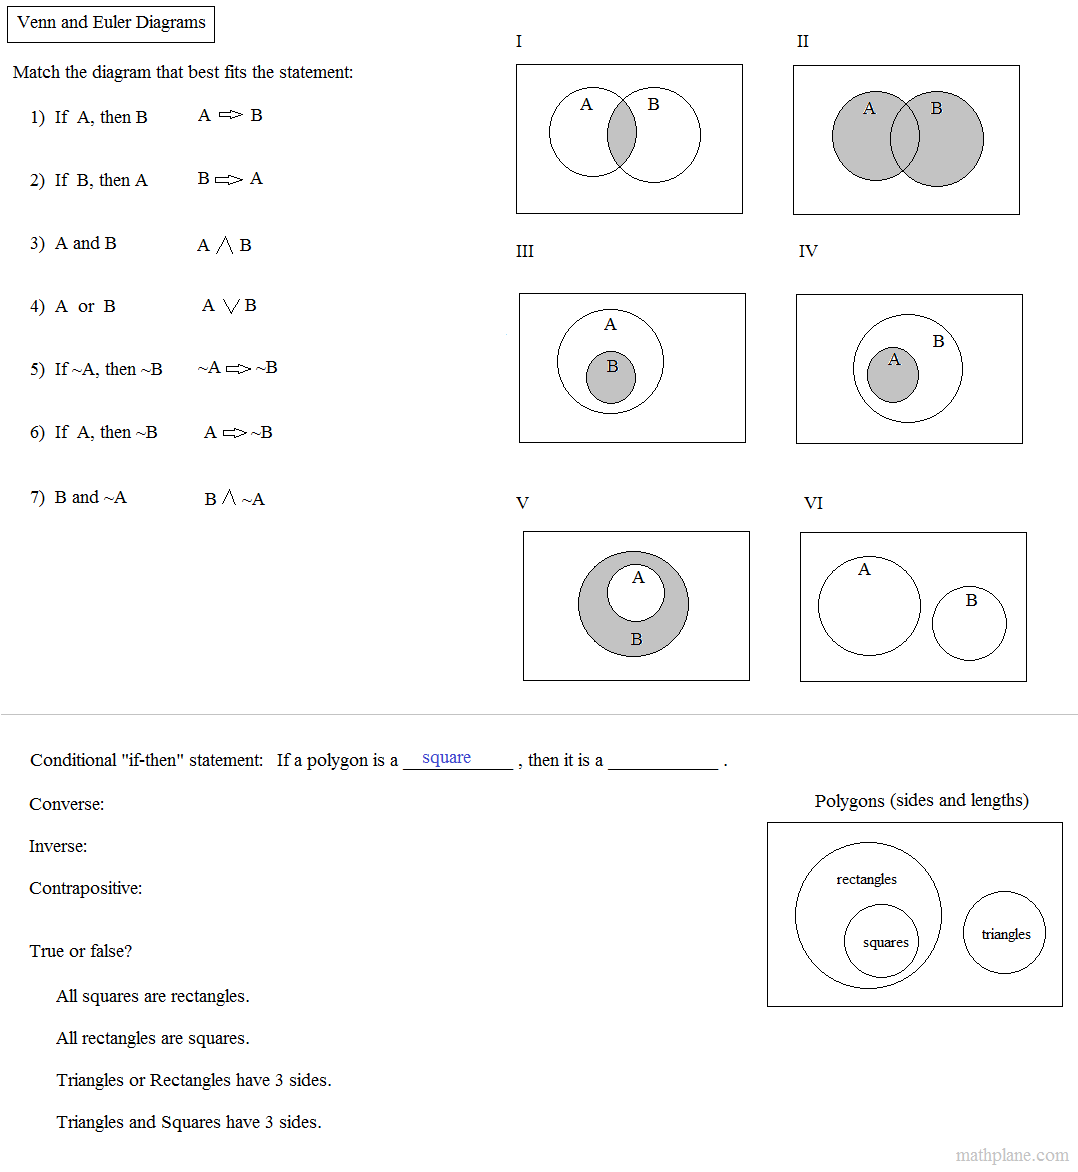 Math plane logic and reasoning venn diagram truth tables exercise pooptronica Gallery